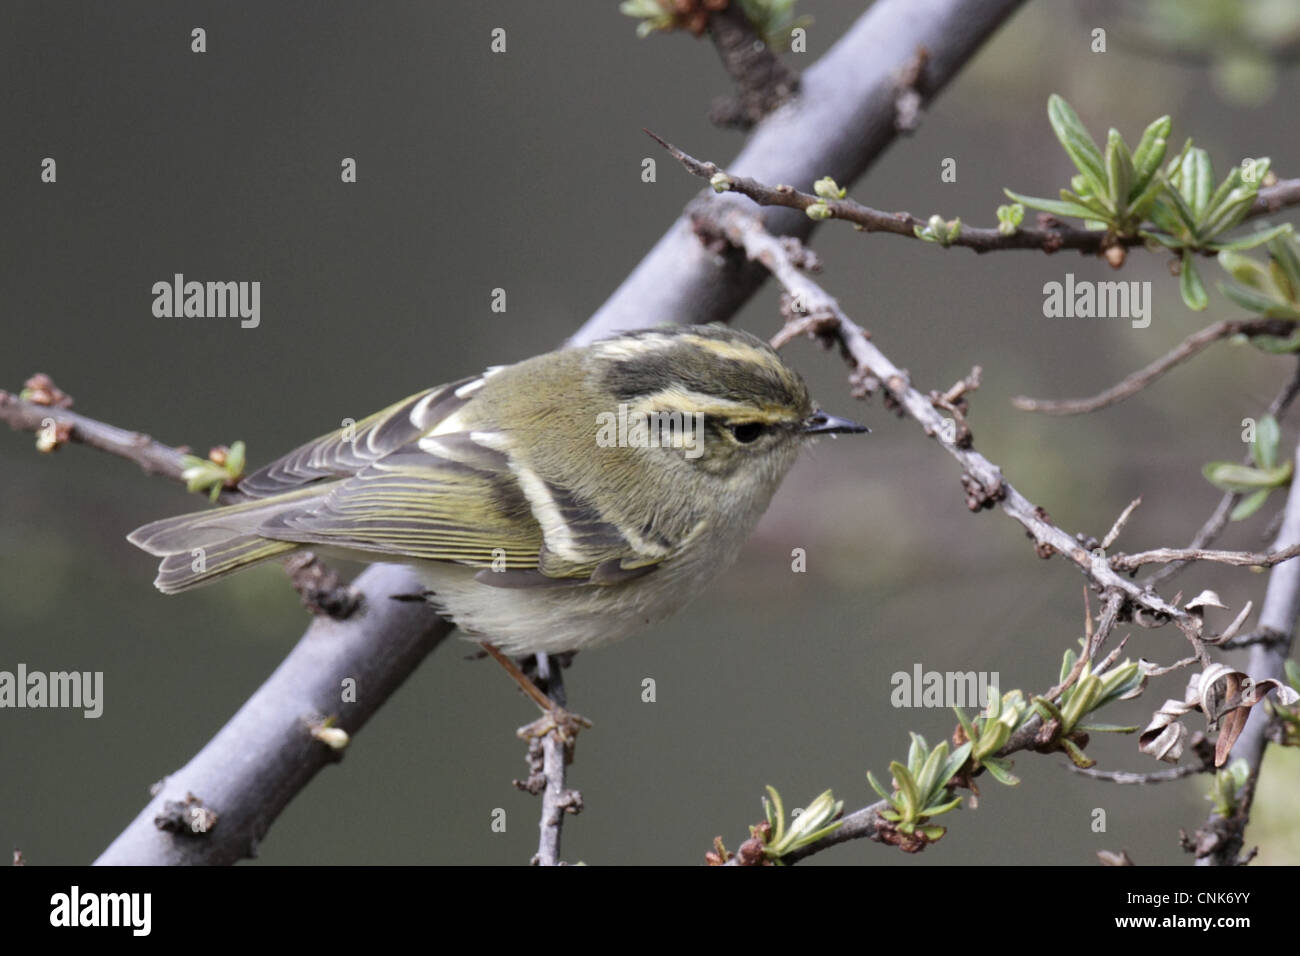 Sichuan Leaf-warbler (Phylloscopus forresti) adult, perched on twig, Yunnan, China, may Stock Photo